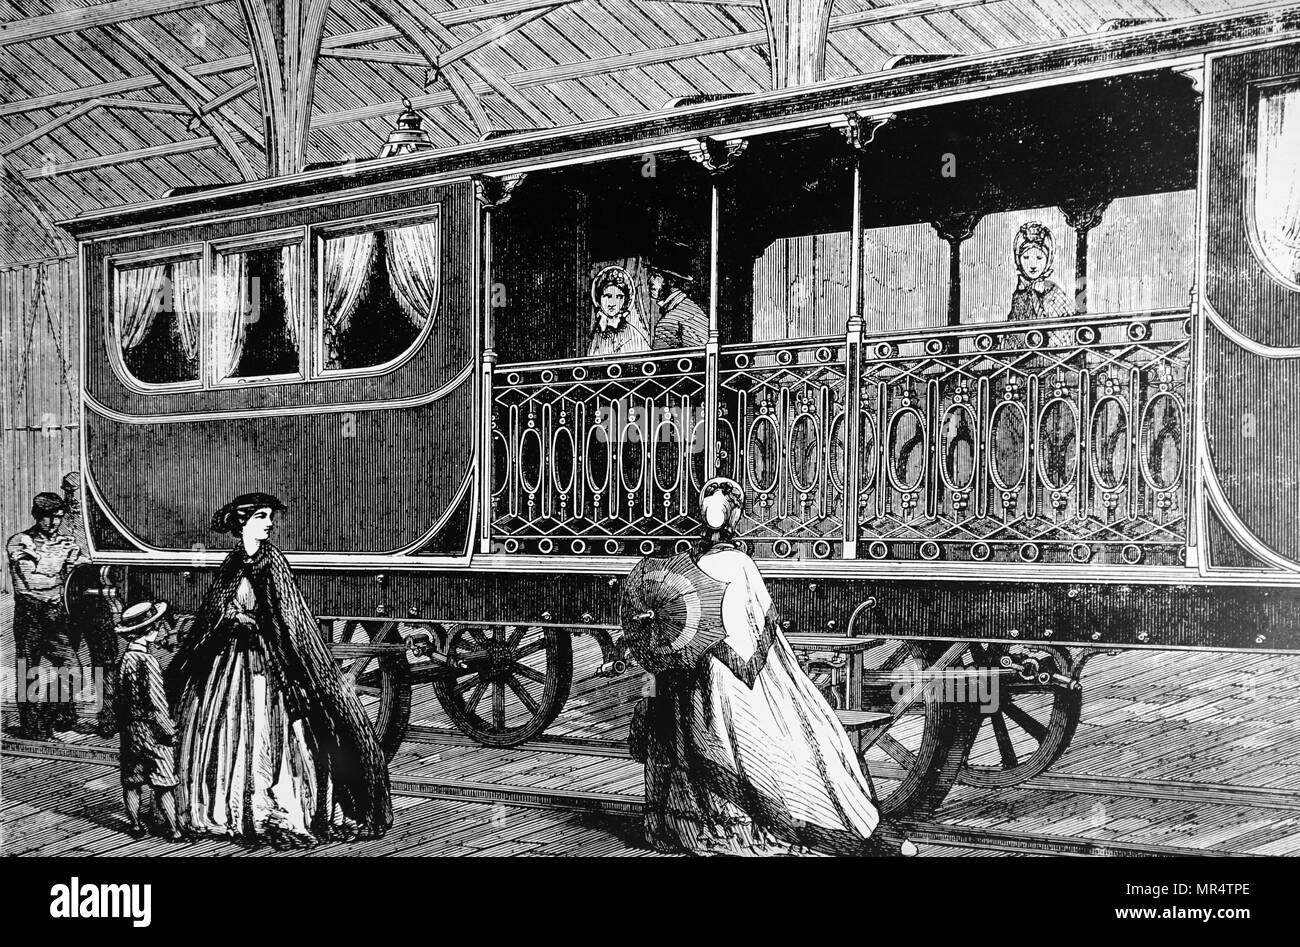 Engraving depicting a Belgian first-class carriage on show at the International Exhibition in London. Dated 19th century - Stock Image